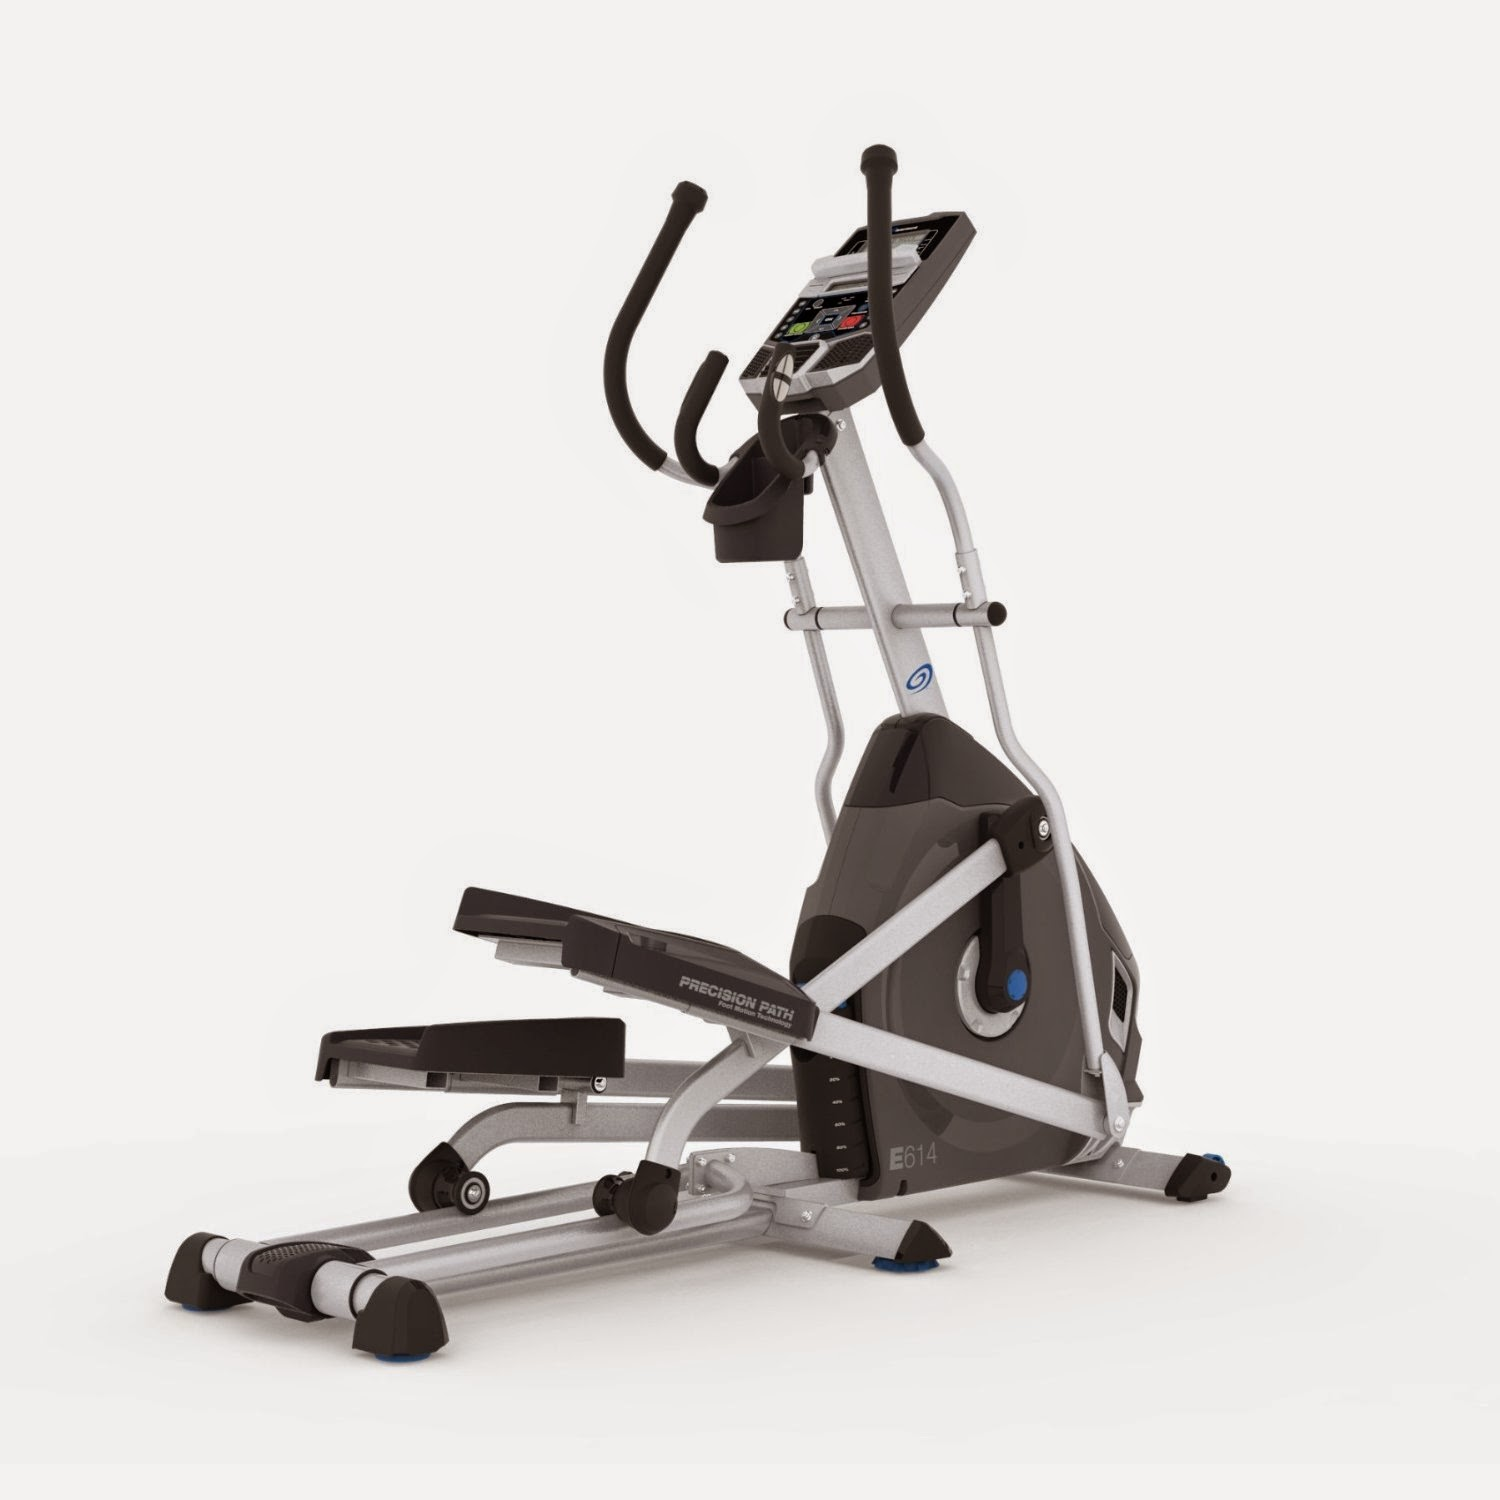 Nautilus E614 Elliptical Trainer, picture, image, review features & specifications, compare with Nautilus E616